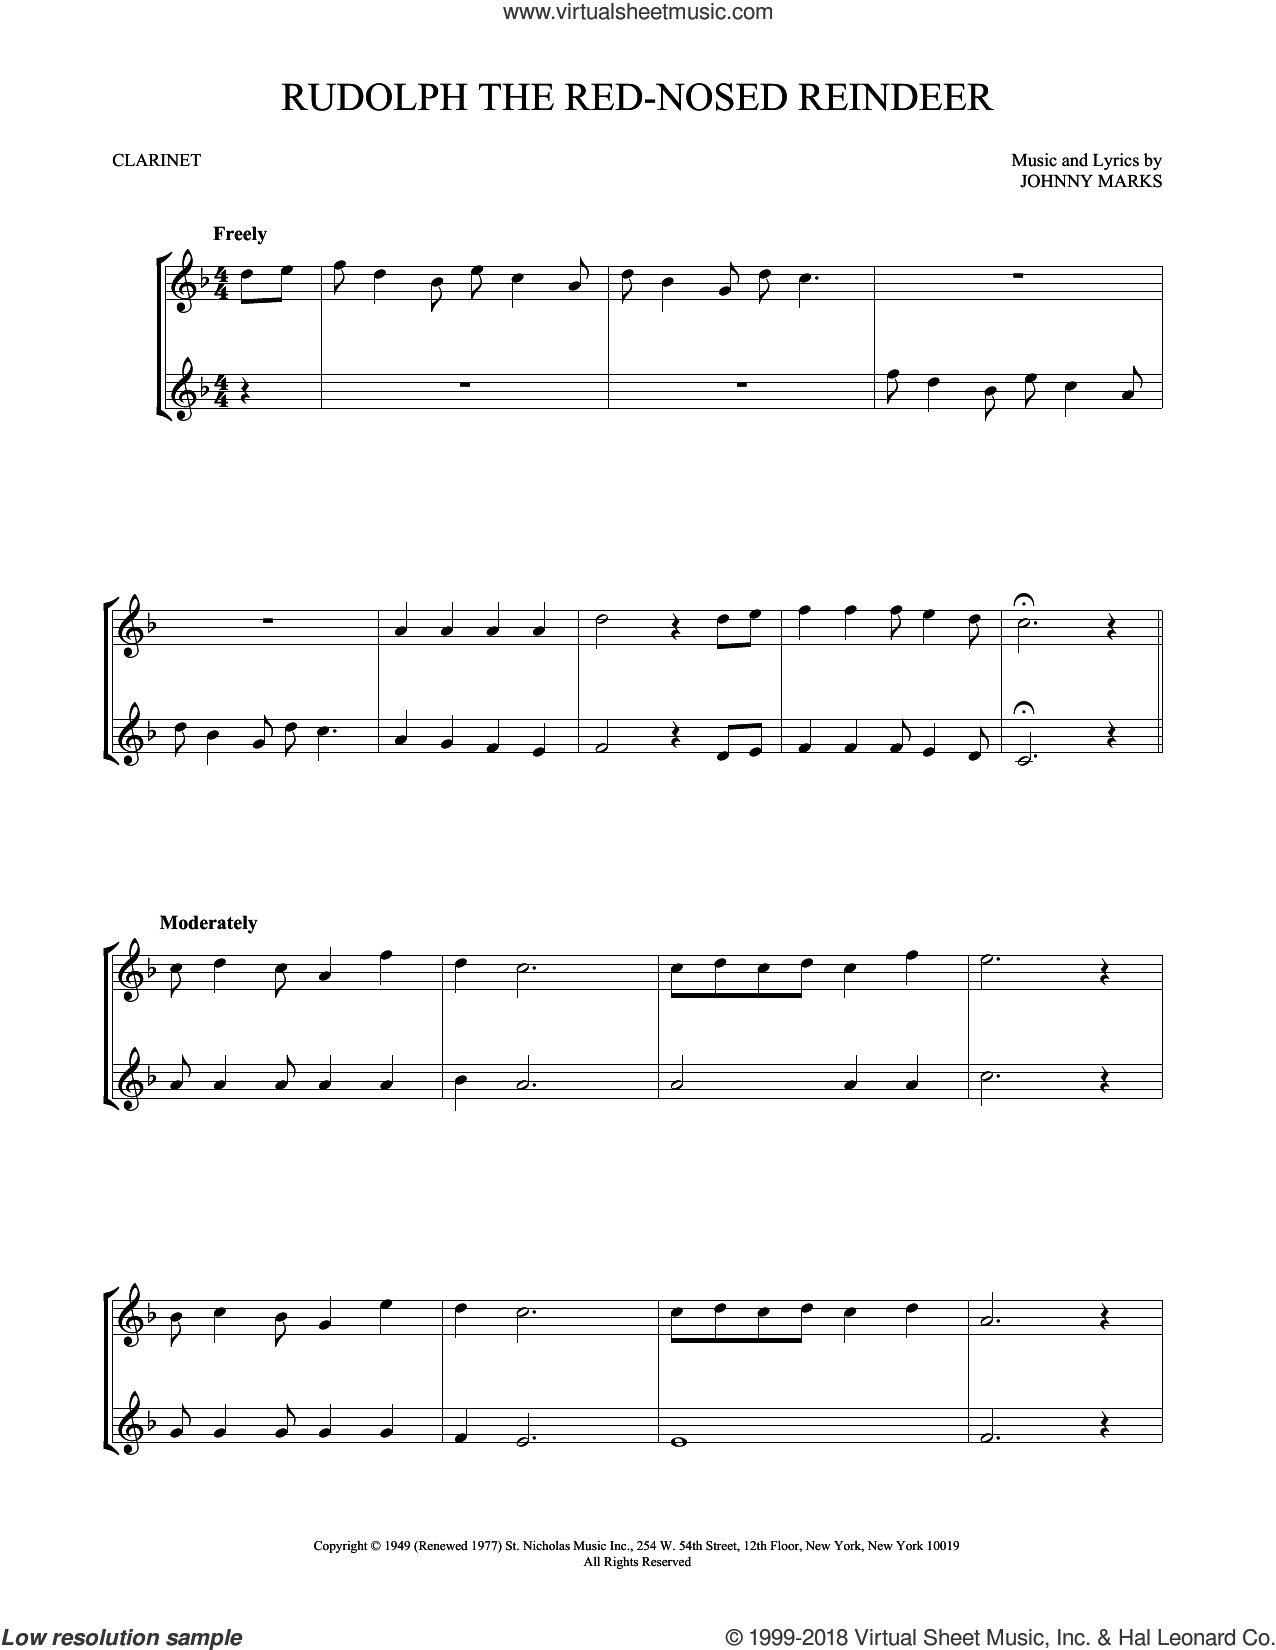 Rudolph The Red-Nosed Reindeer sheet music for two clarinets (duets) by Johnny Marks, intermediate skill level